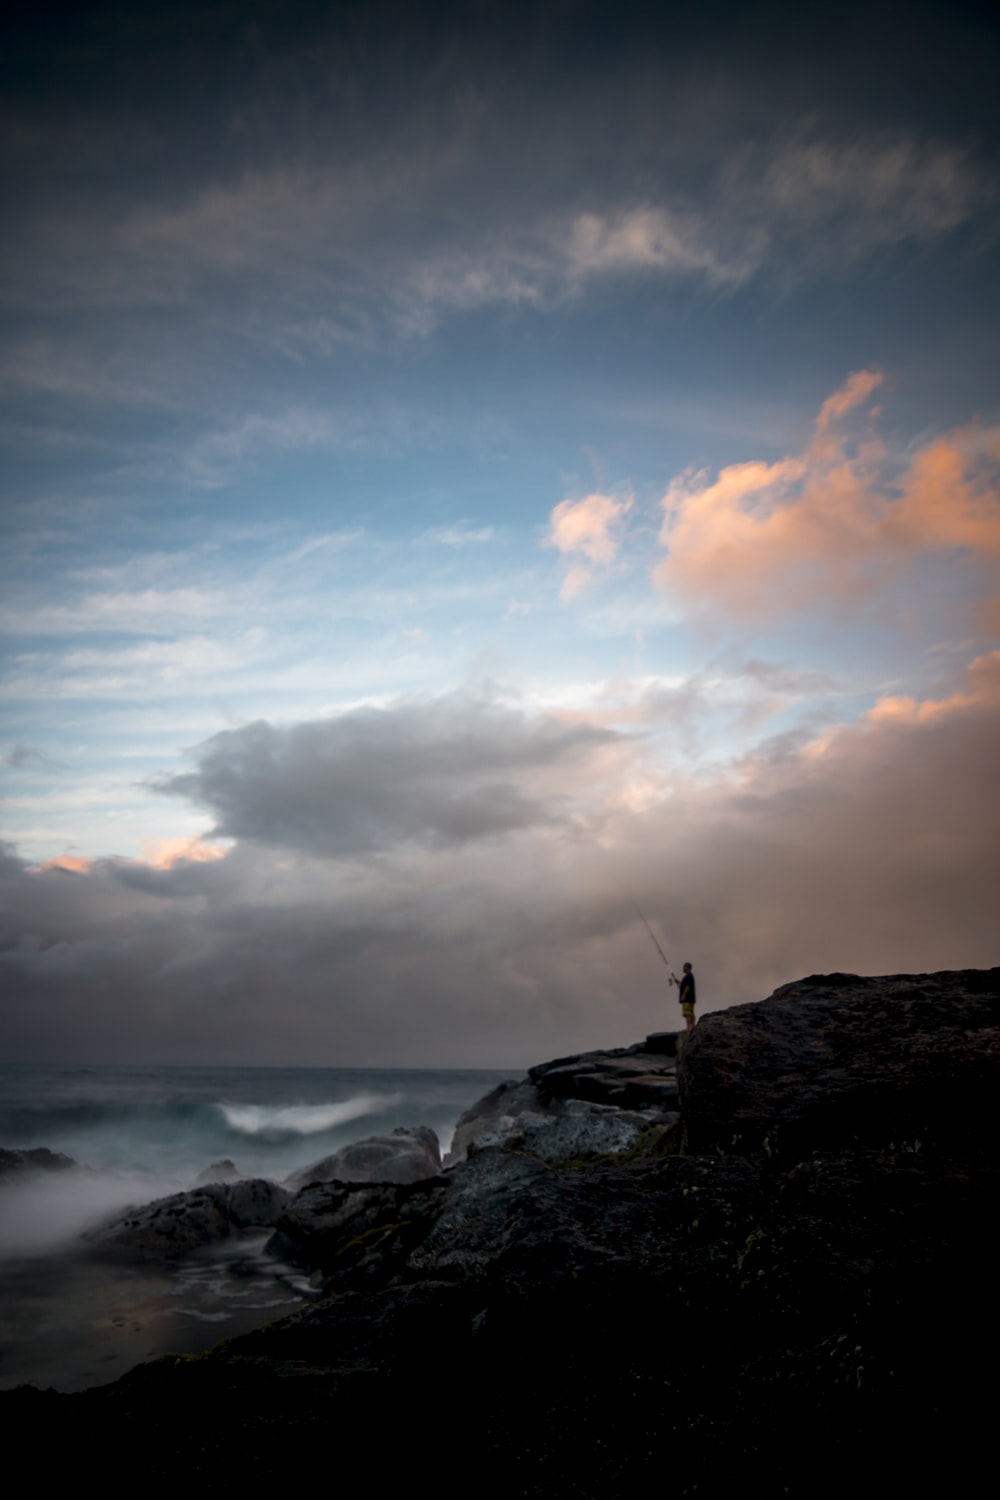 man standing on cliff fishing during daytime